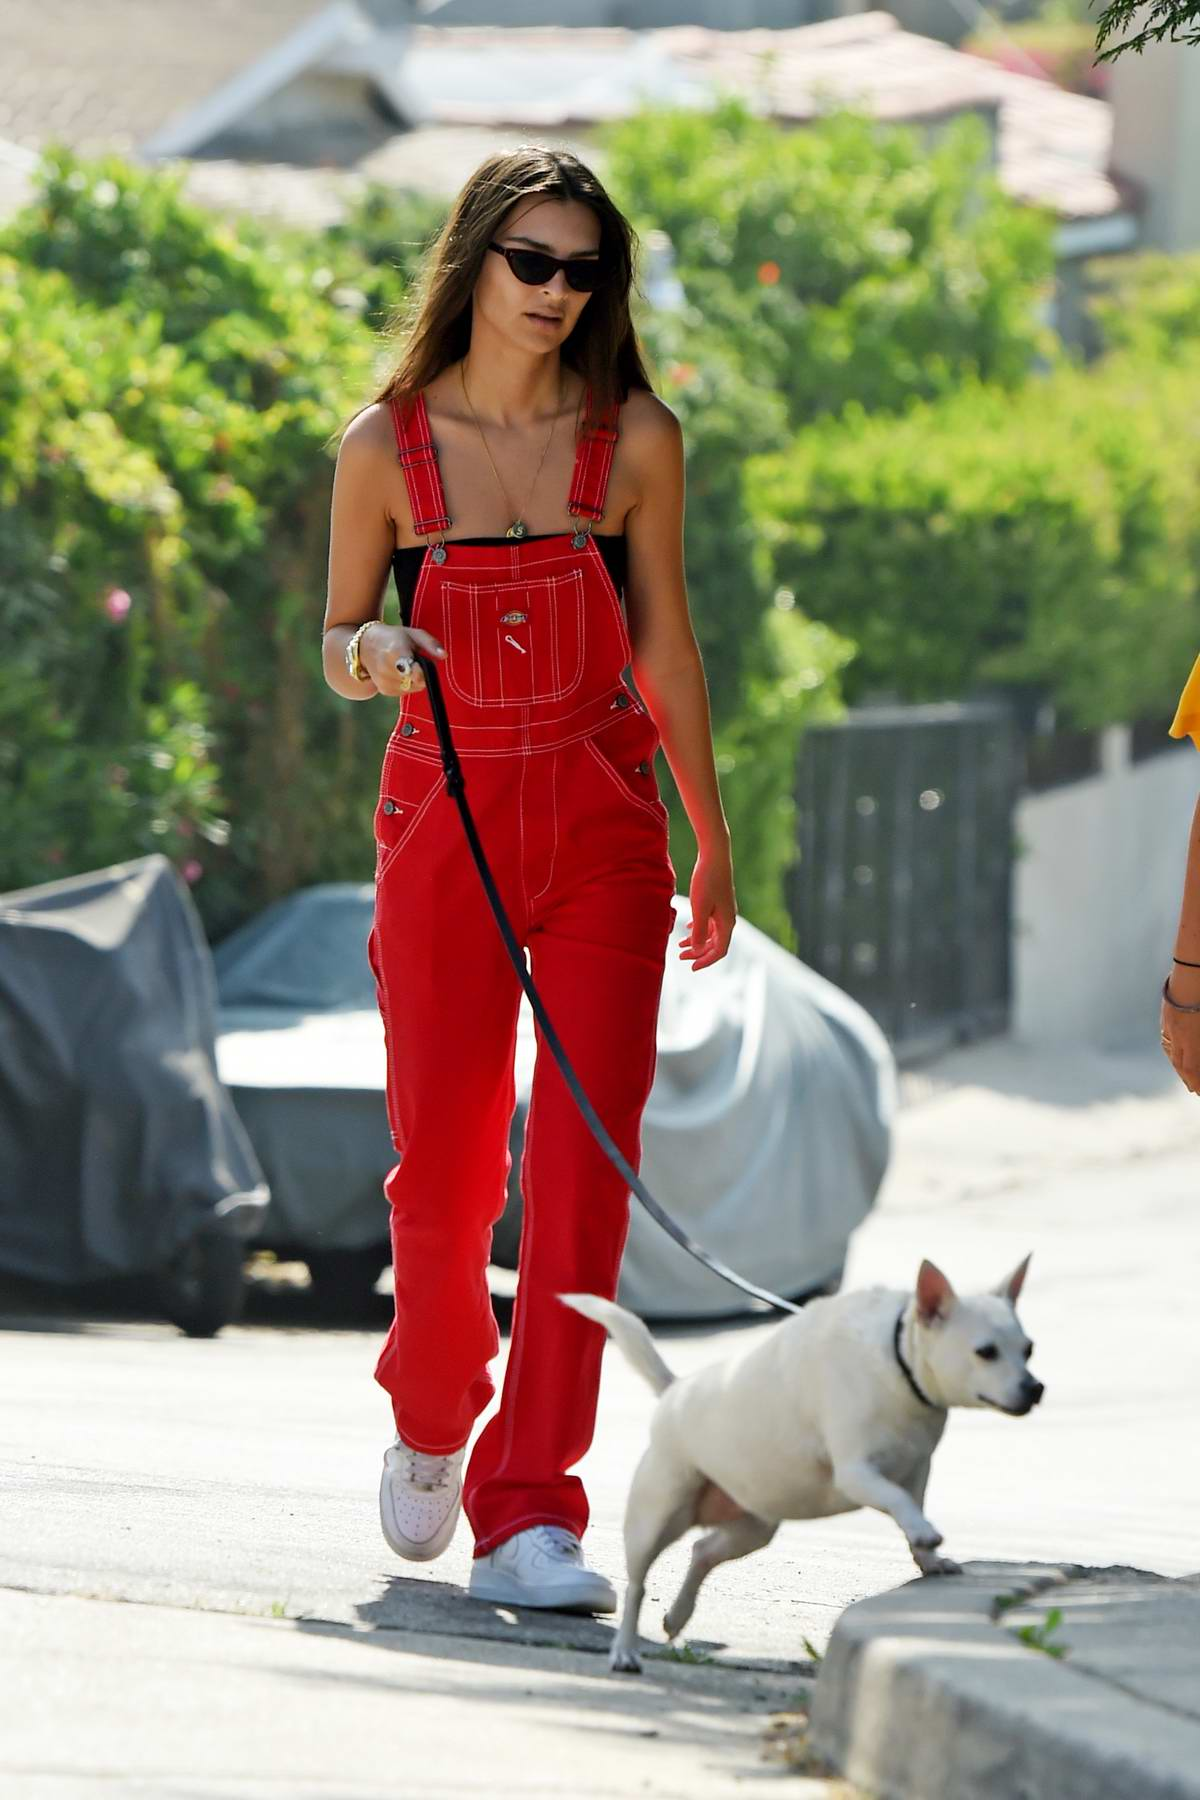 Emily Ratajkowski rocks red overalls while out for a stroll with her dog in Los Angeles